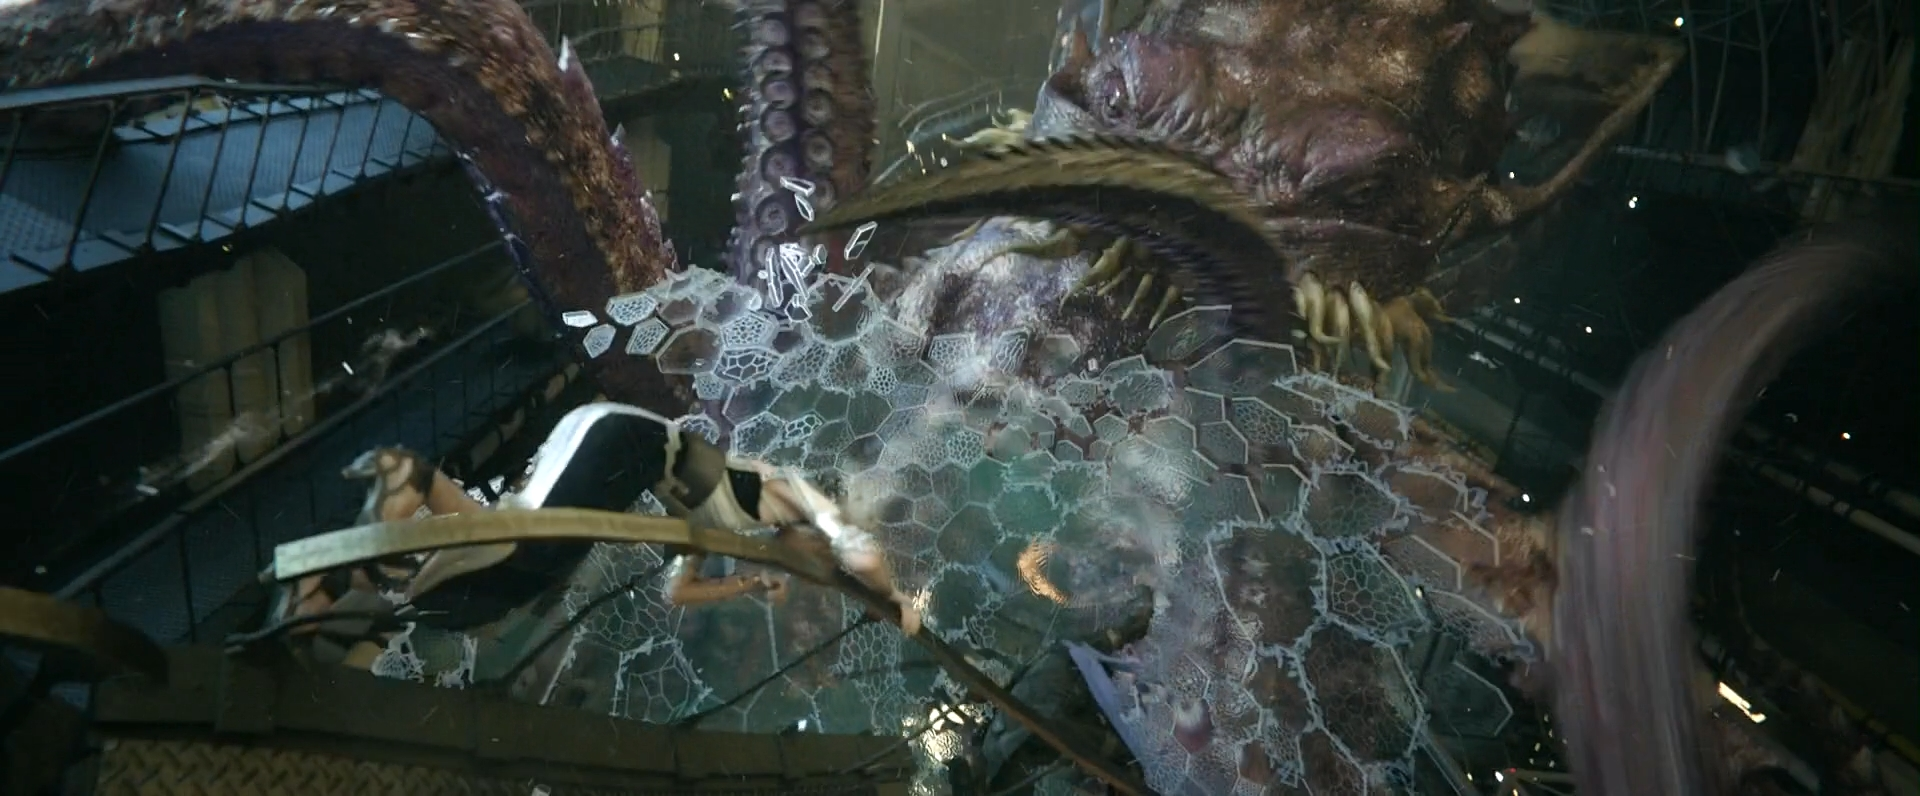 Kingsglaive Final Fantasy Xv Octopus Nefarious Reviews